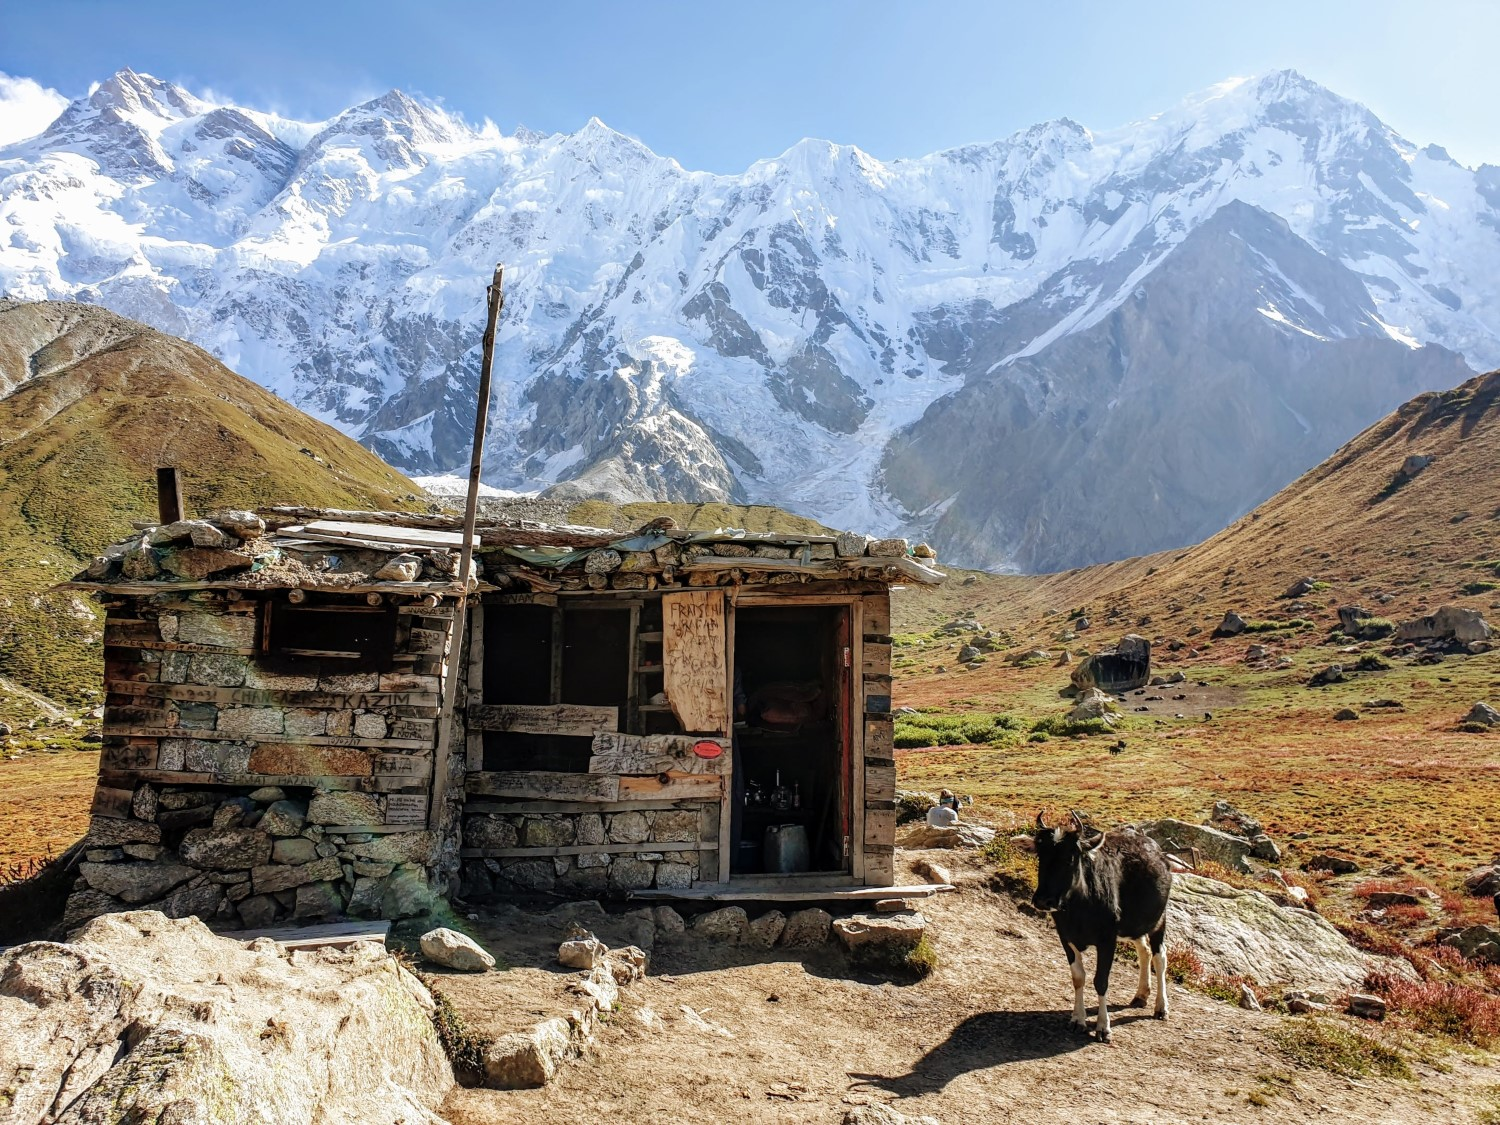 """The exact location of the """"Base Camp"""" seemed to be a bit open to debate, but this """"Nanga Parbat Tuckshop"""" seemed like the ideal final destination for the hike."""